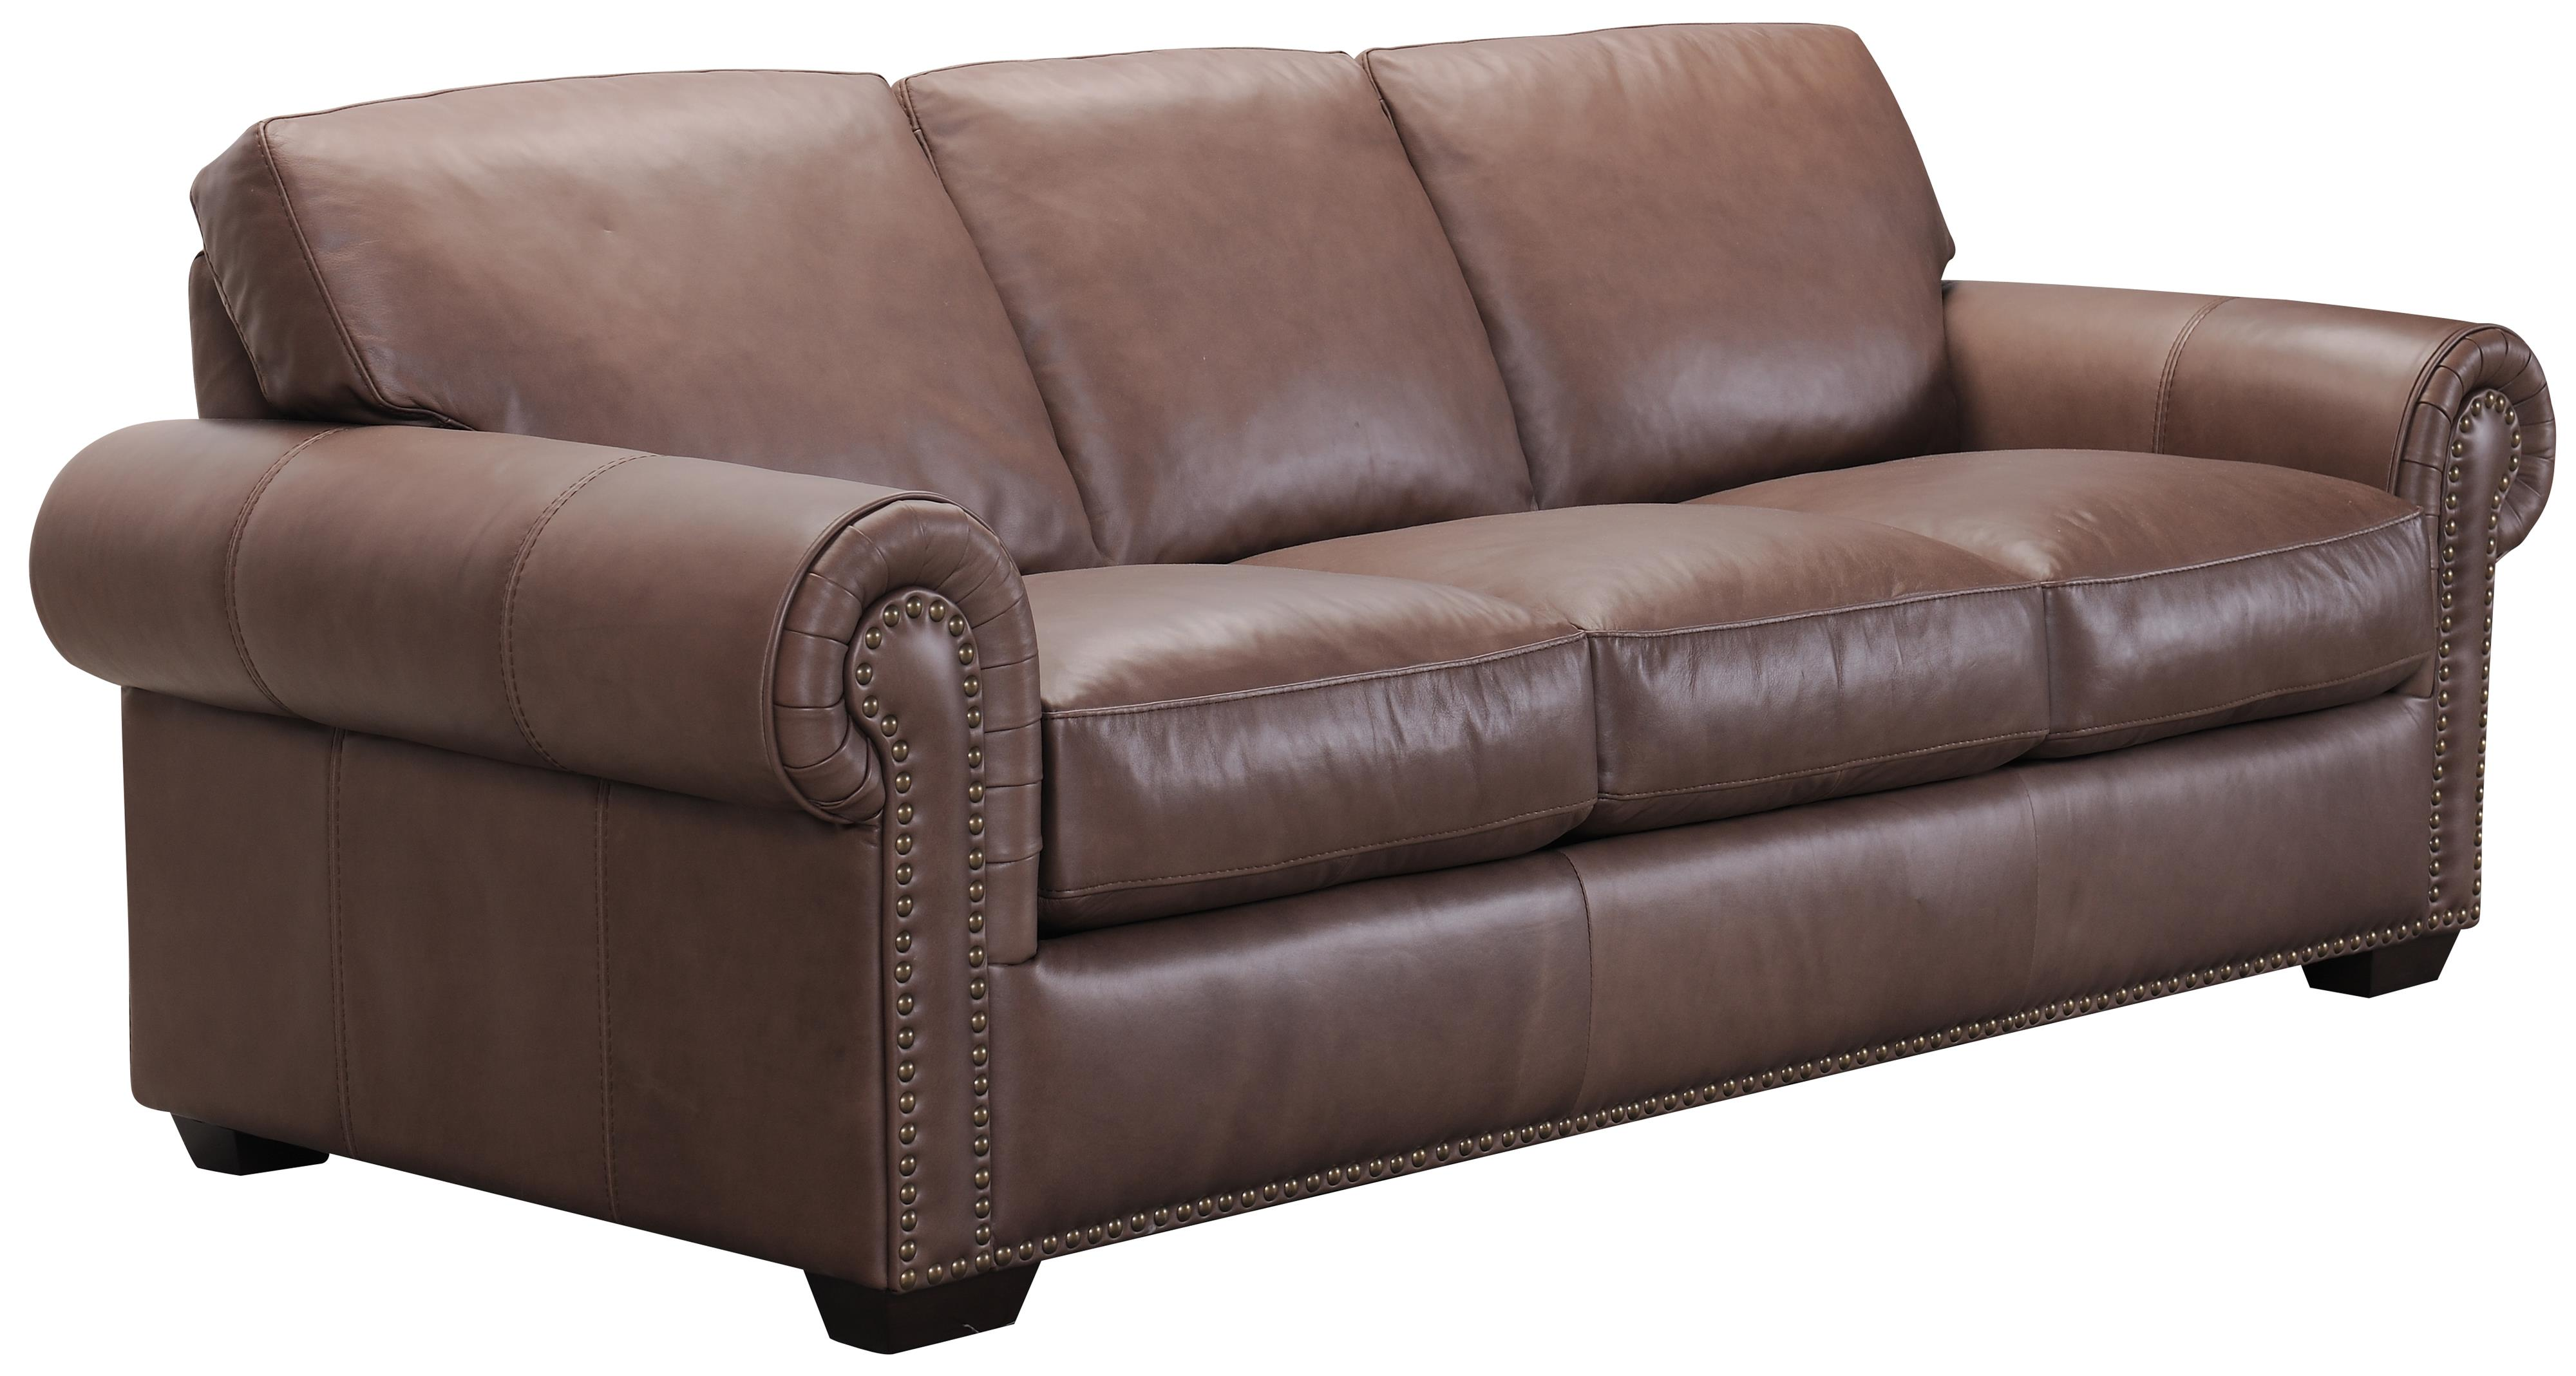 Belfort Select Taylor Brown Leather Sofa - Item Number: 3500XF-3P